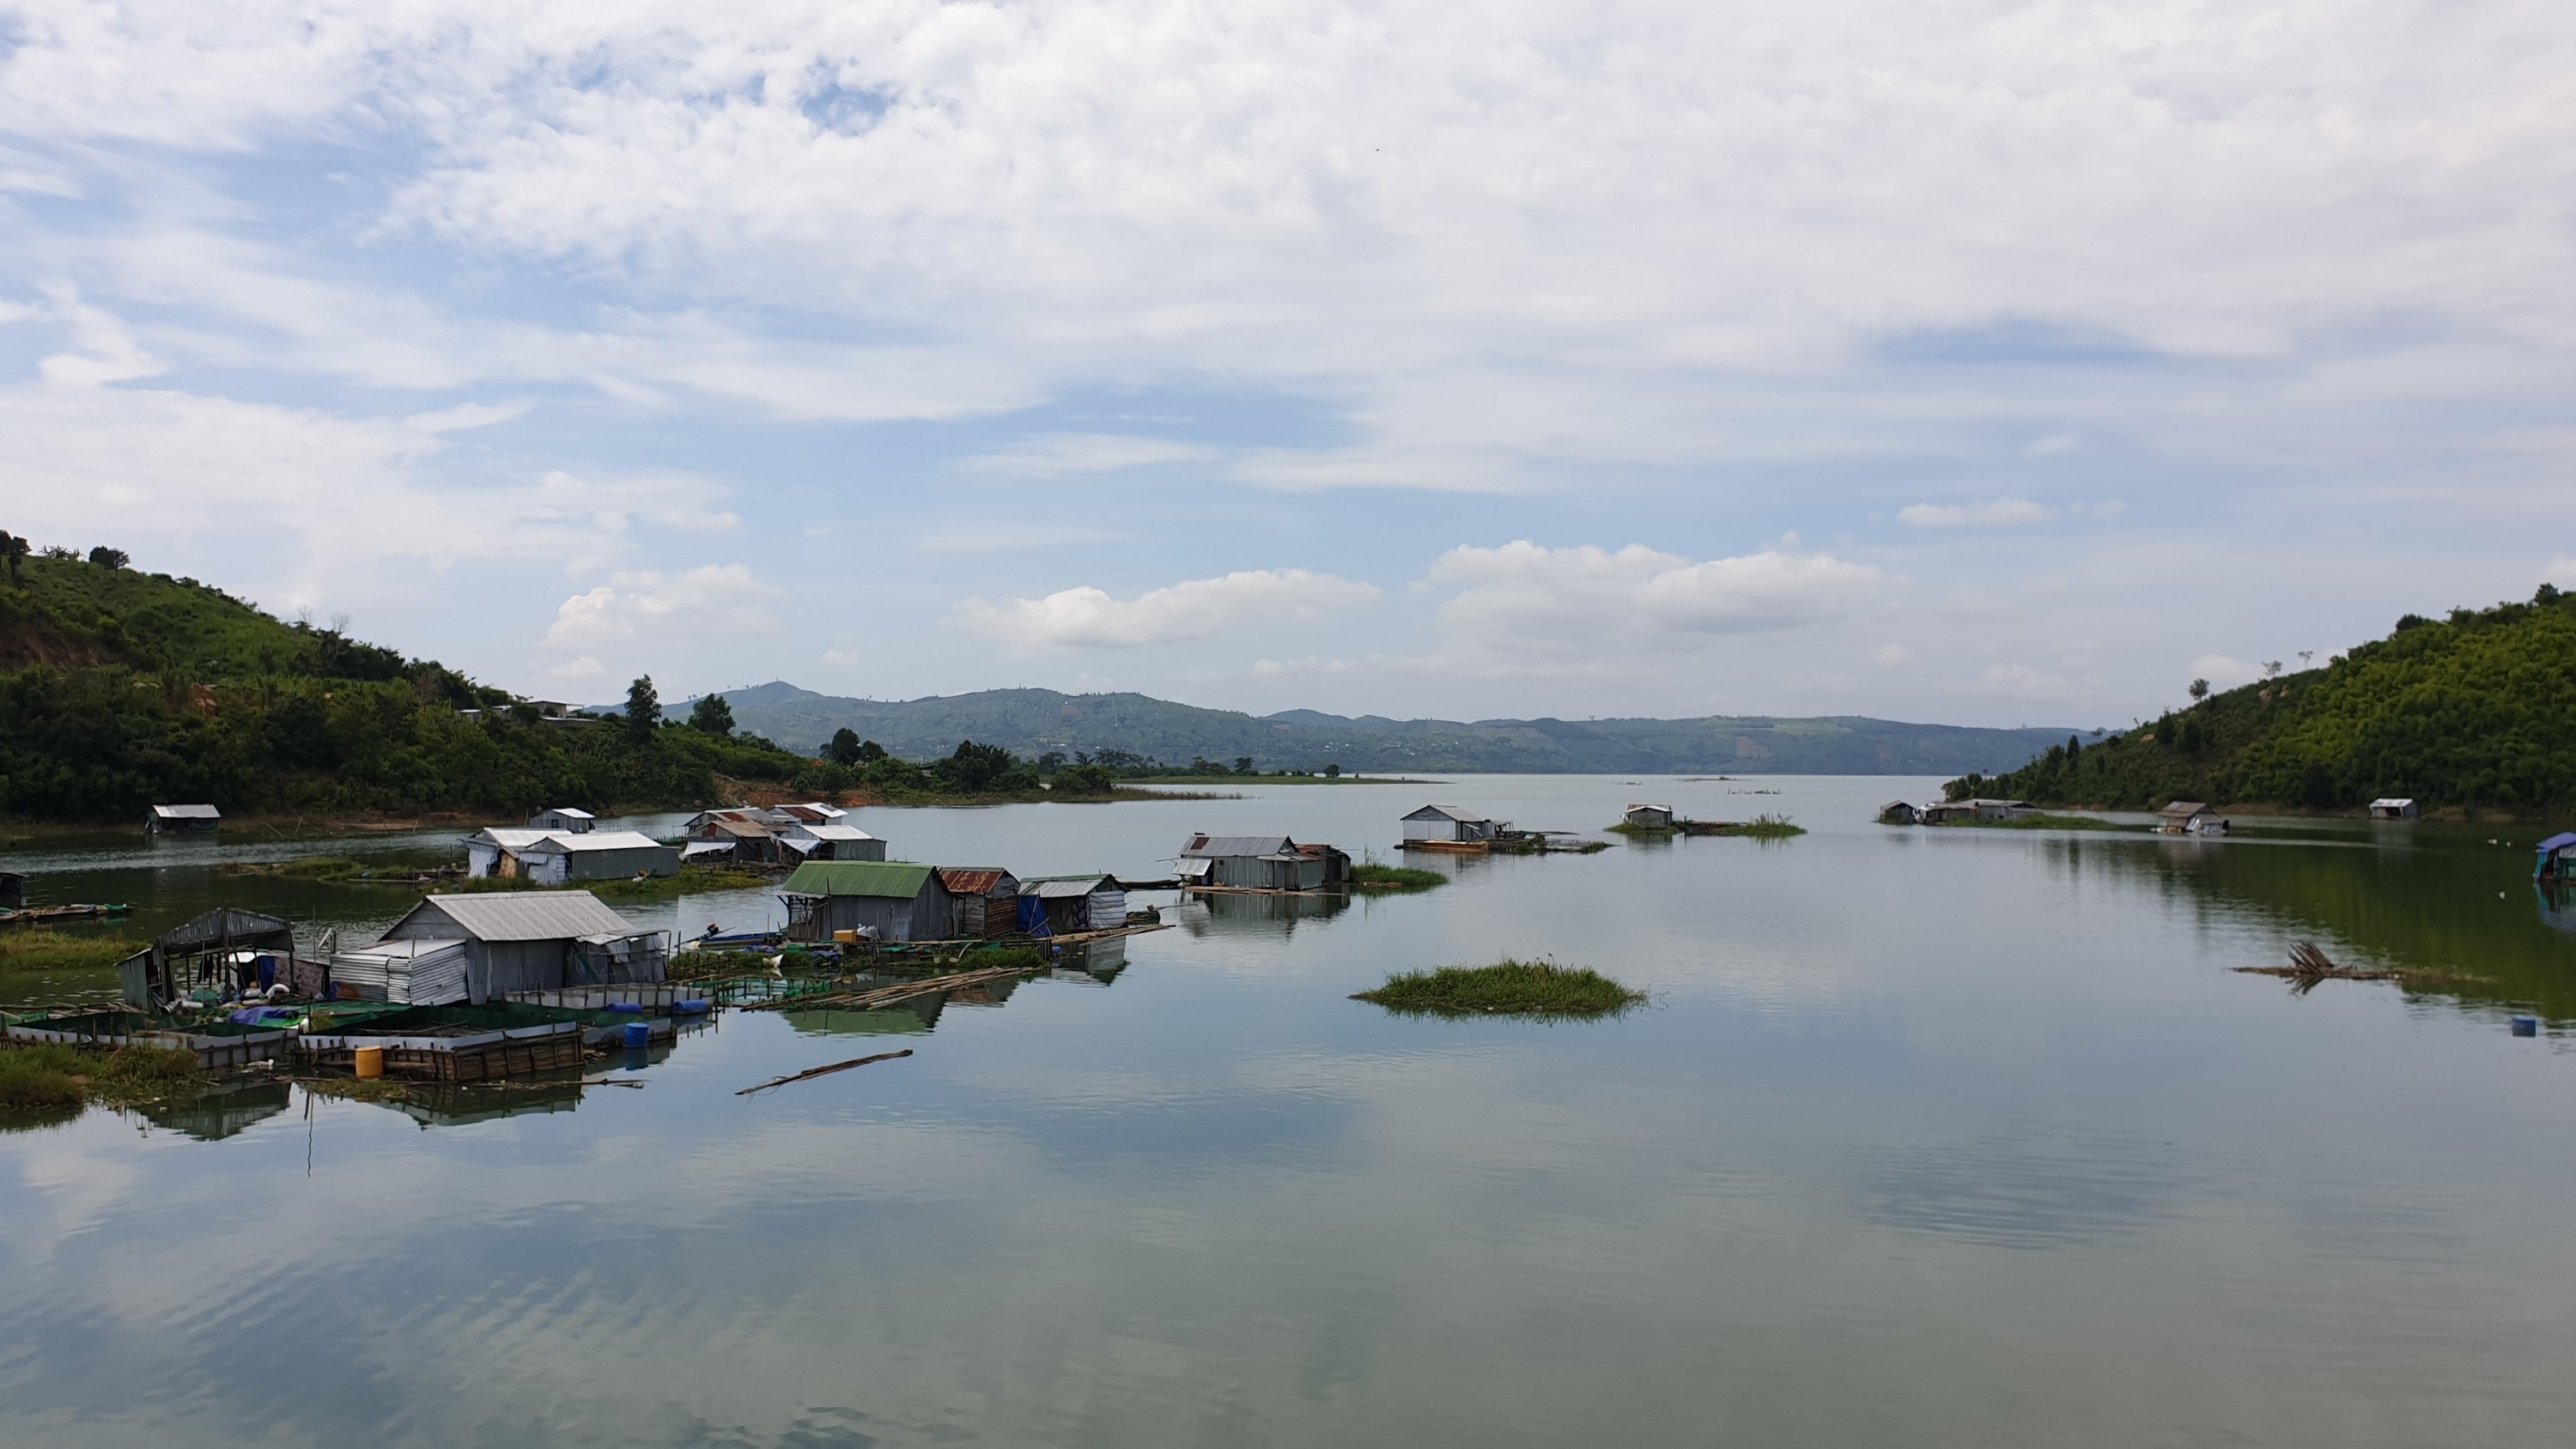 Floating village with individual homes floating on barrels in a river in rural Vietnam